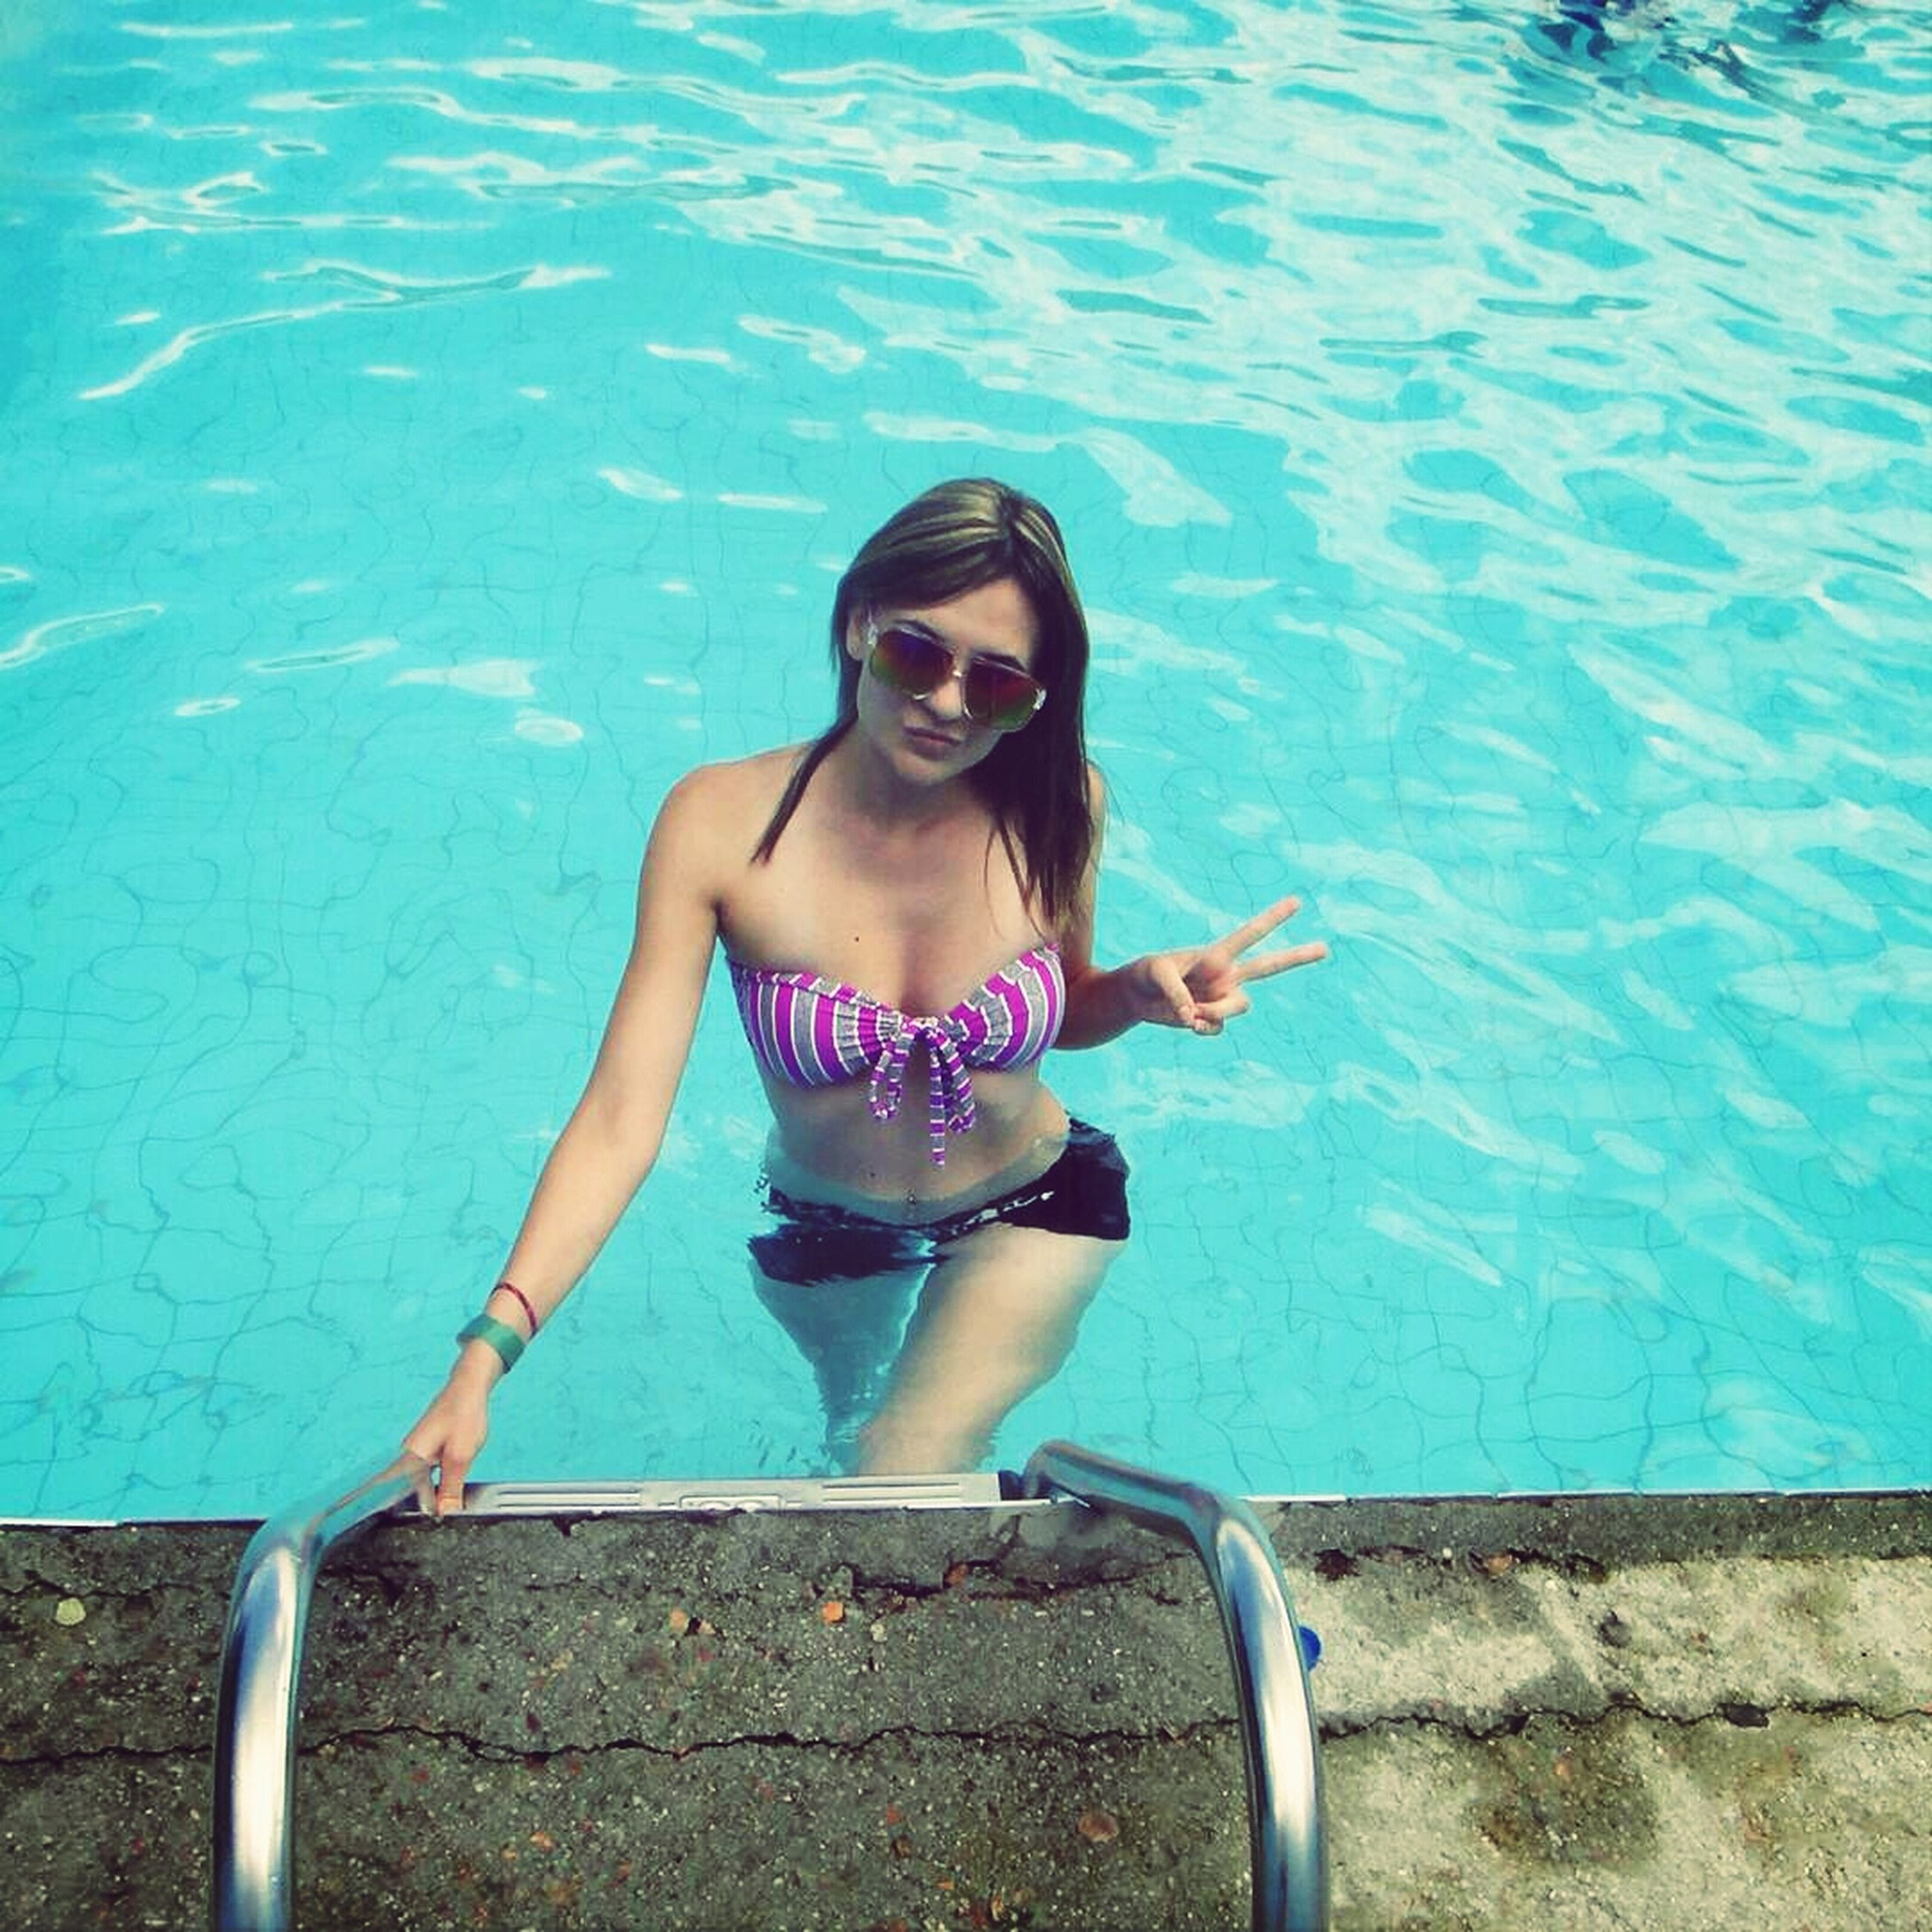 water, lifestyles, person, leisure activity, young adult, casual clothing, portrait, young women, looking at camera, blue, standing, swimming pool, front view, high angle view, full length, smiling, sunglasses